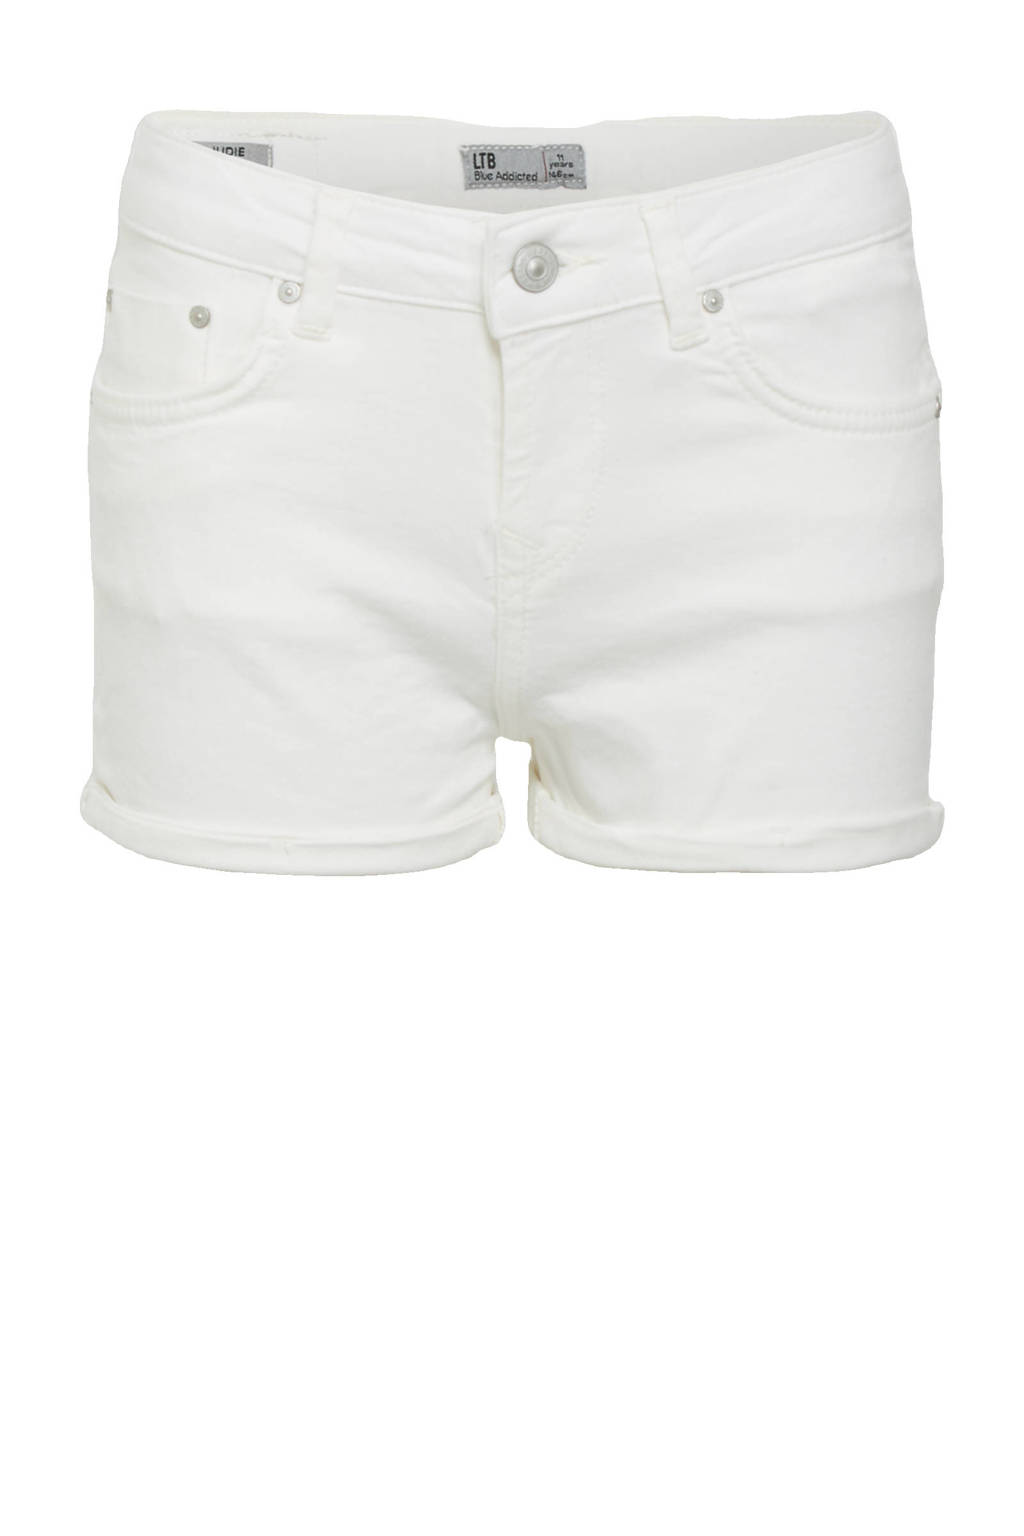 LTB slim fit jeans short Judie marshmallow wash, Marshmallow wash